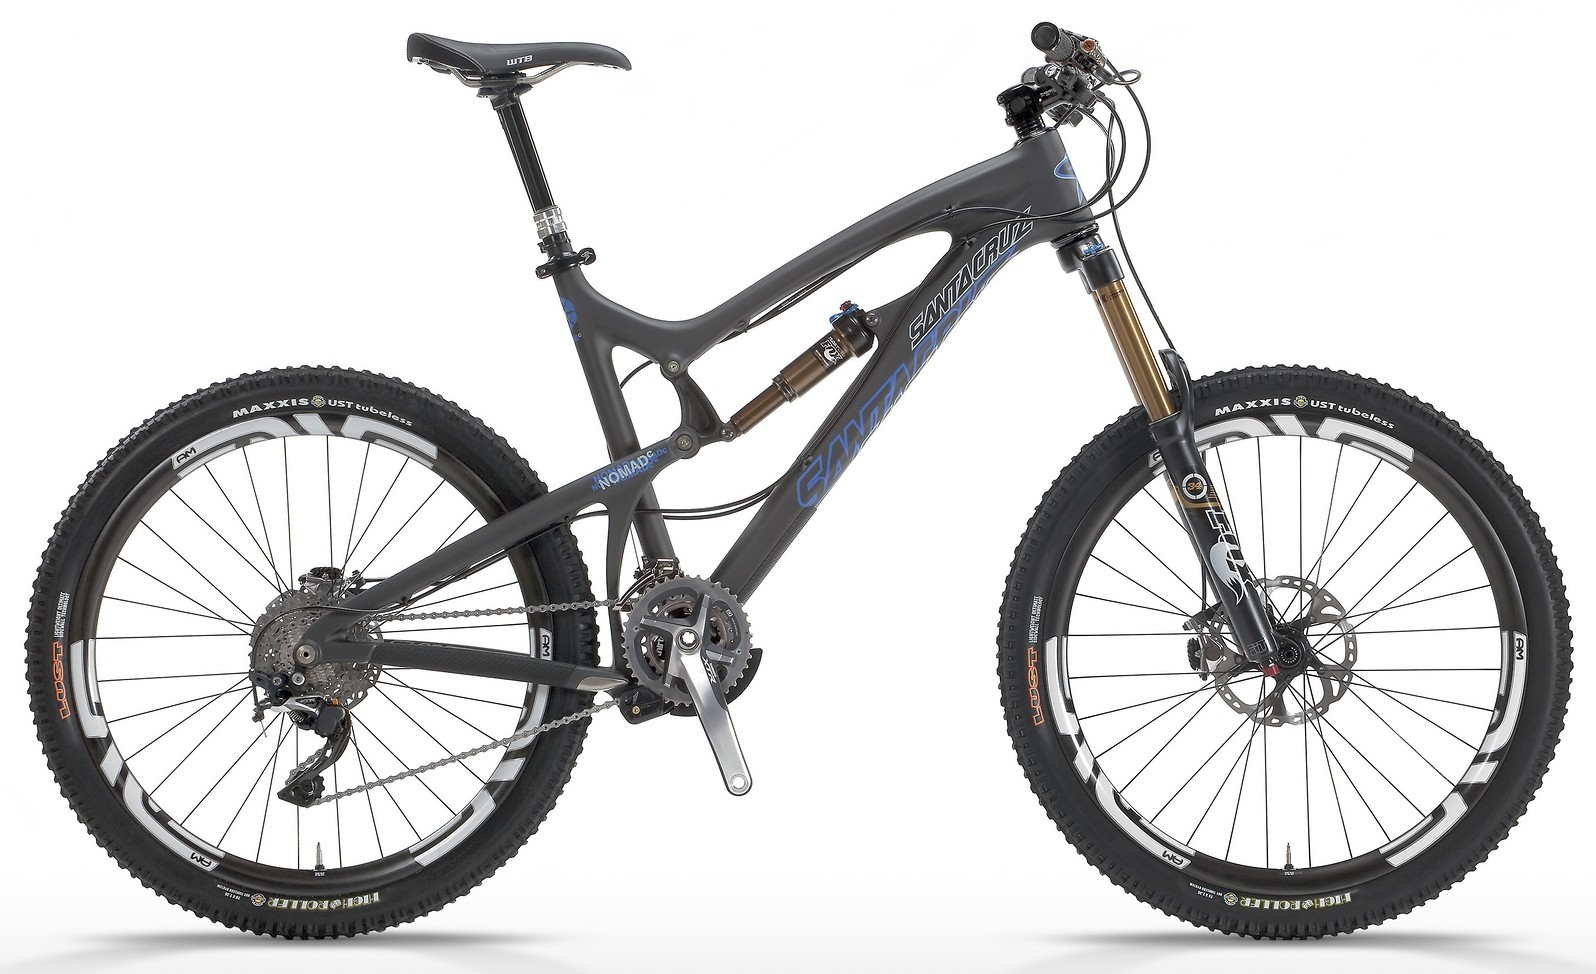 2014 Santa Cruz Nomad Carbon X0-1 AM Bike 2013 NOMAD Ccatalogflat